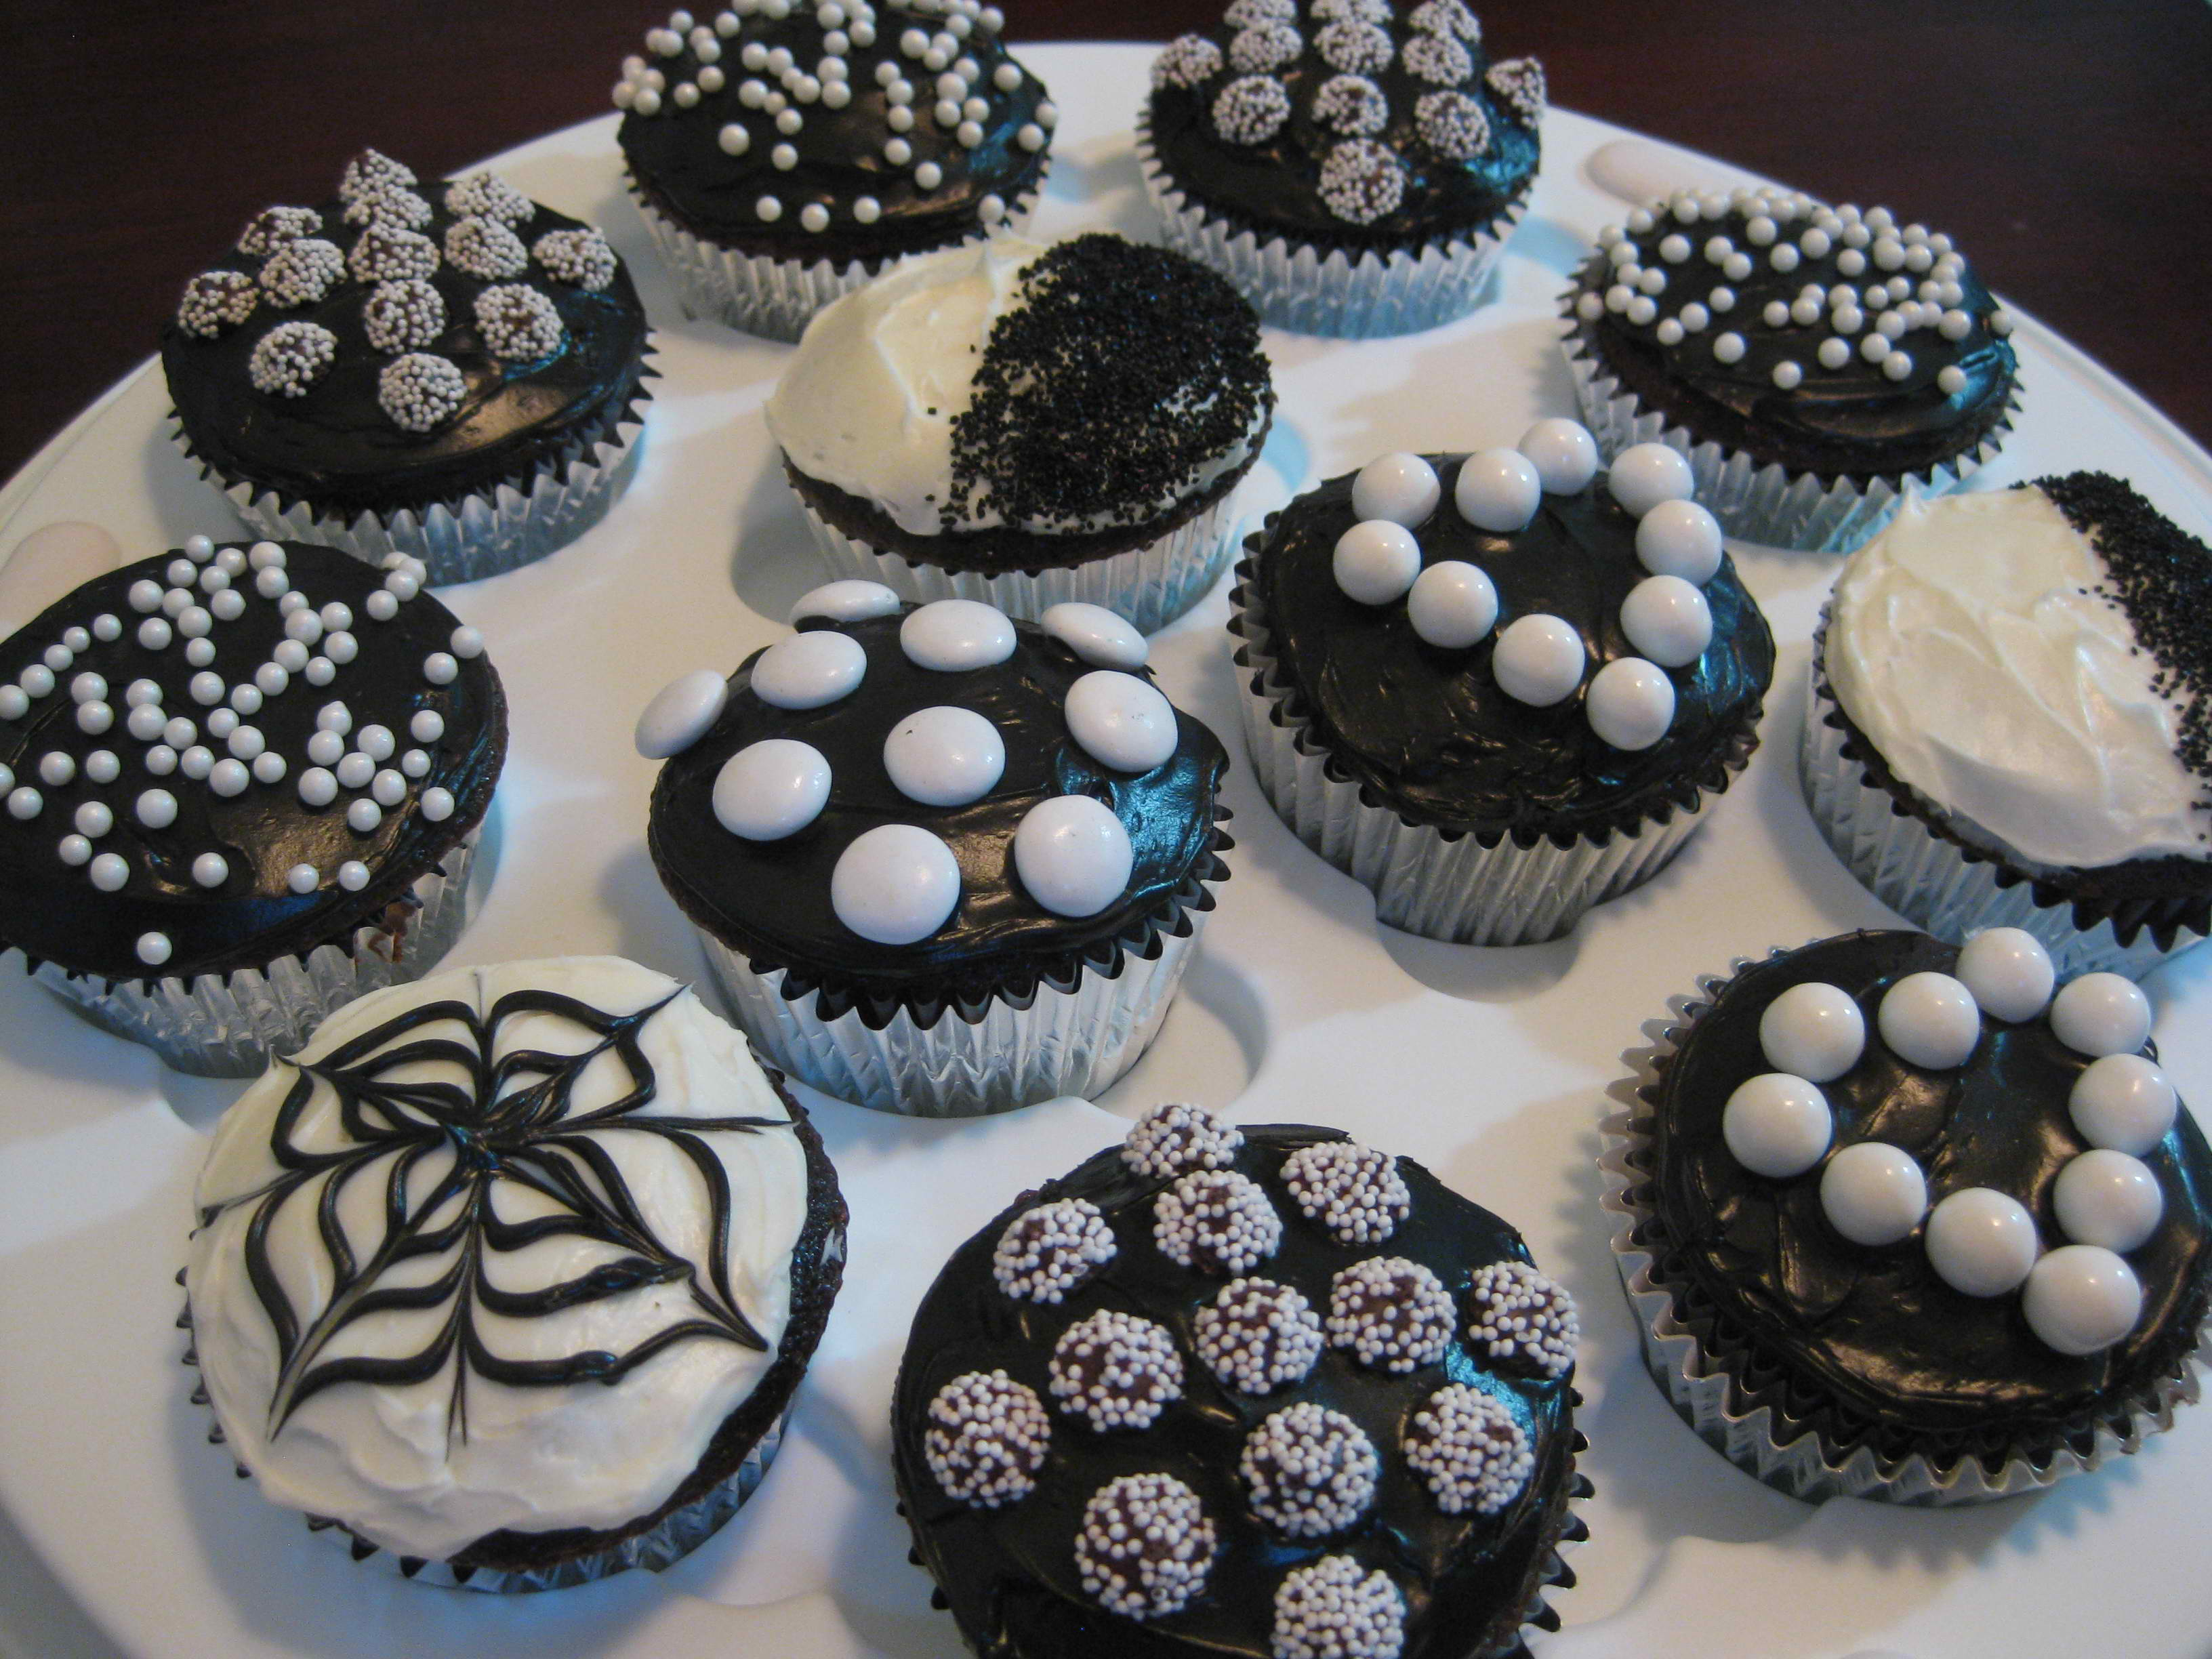 Different Sytles of Black and White Themed Cupcakes